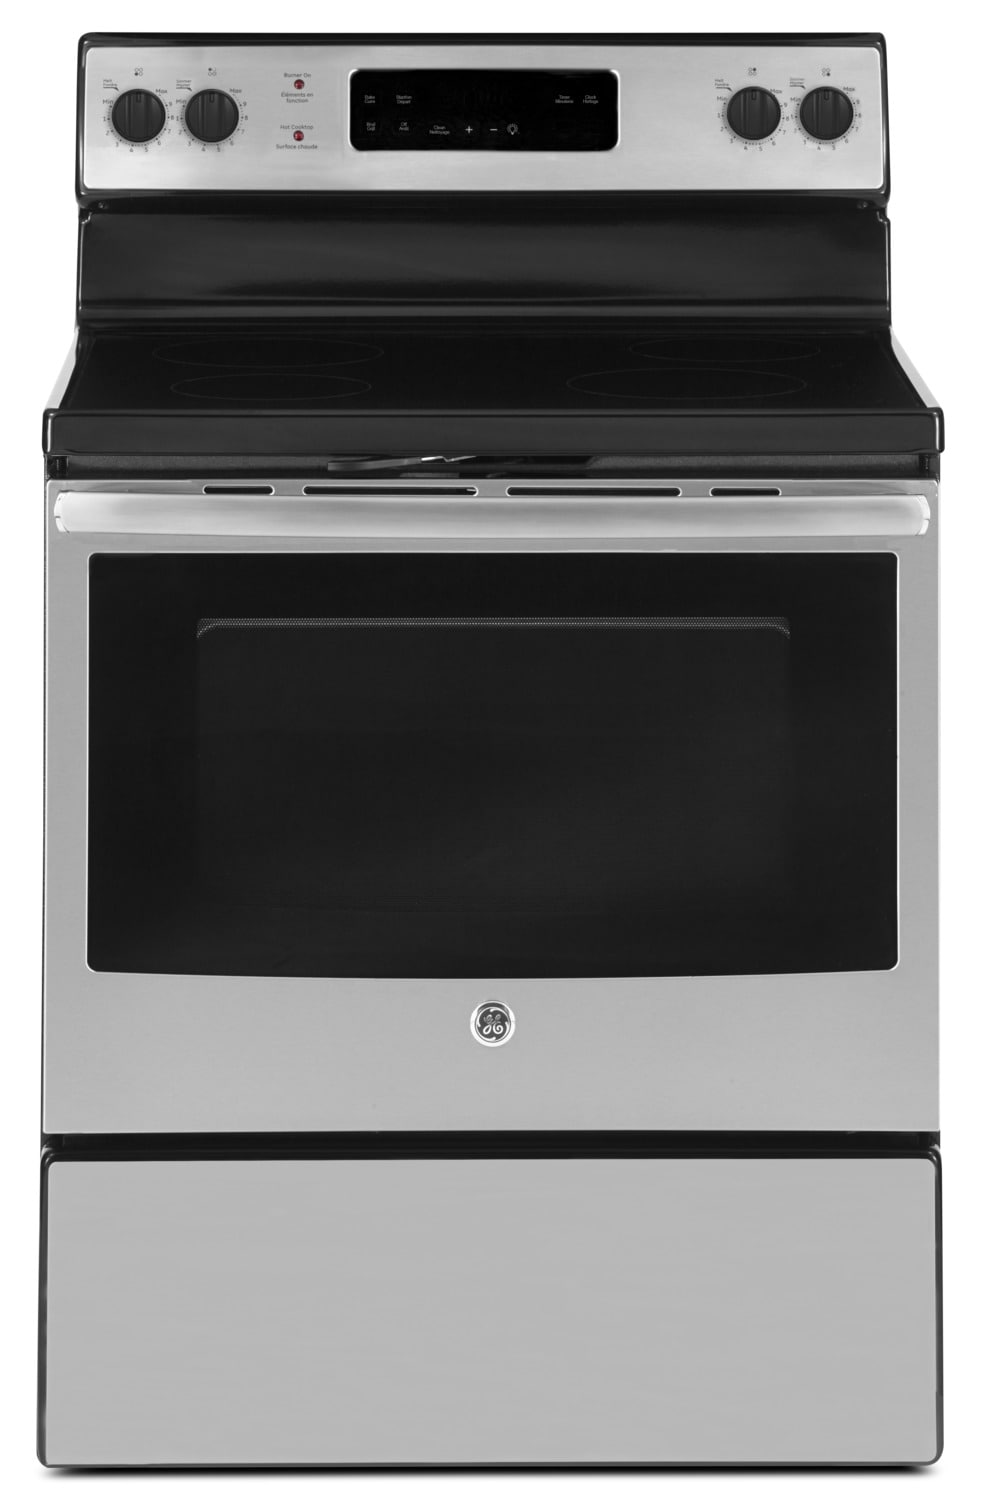 GE 5.0 Cubic Foot Freestanding Electric Self-Cleaning Range – JCB630SKSS